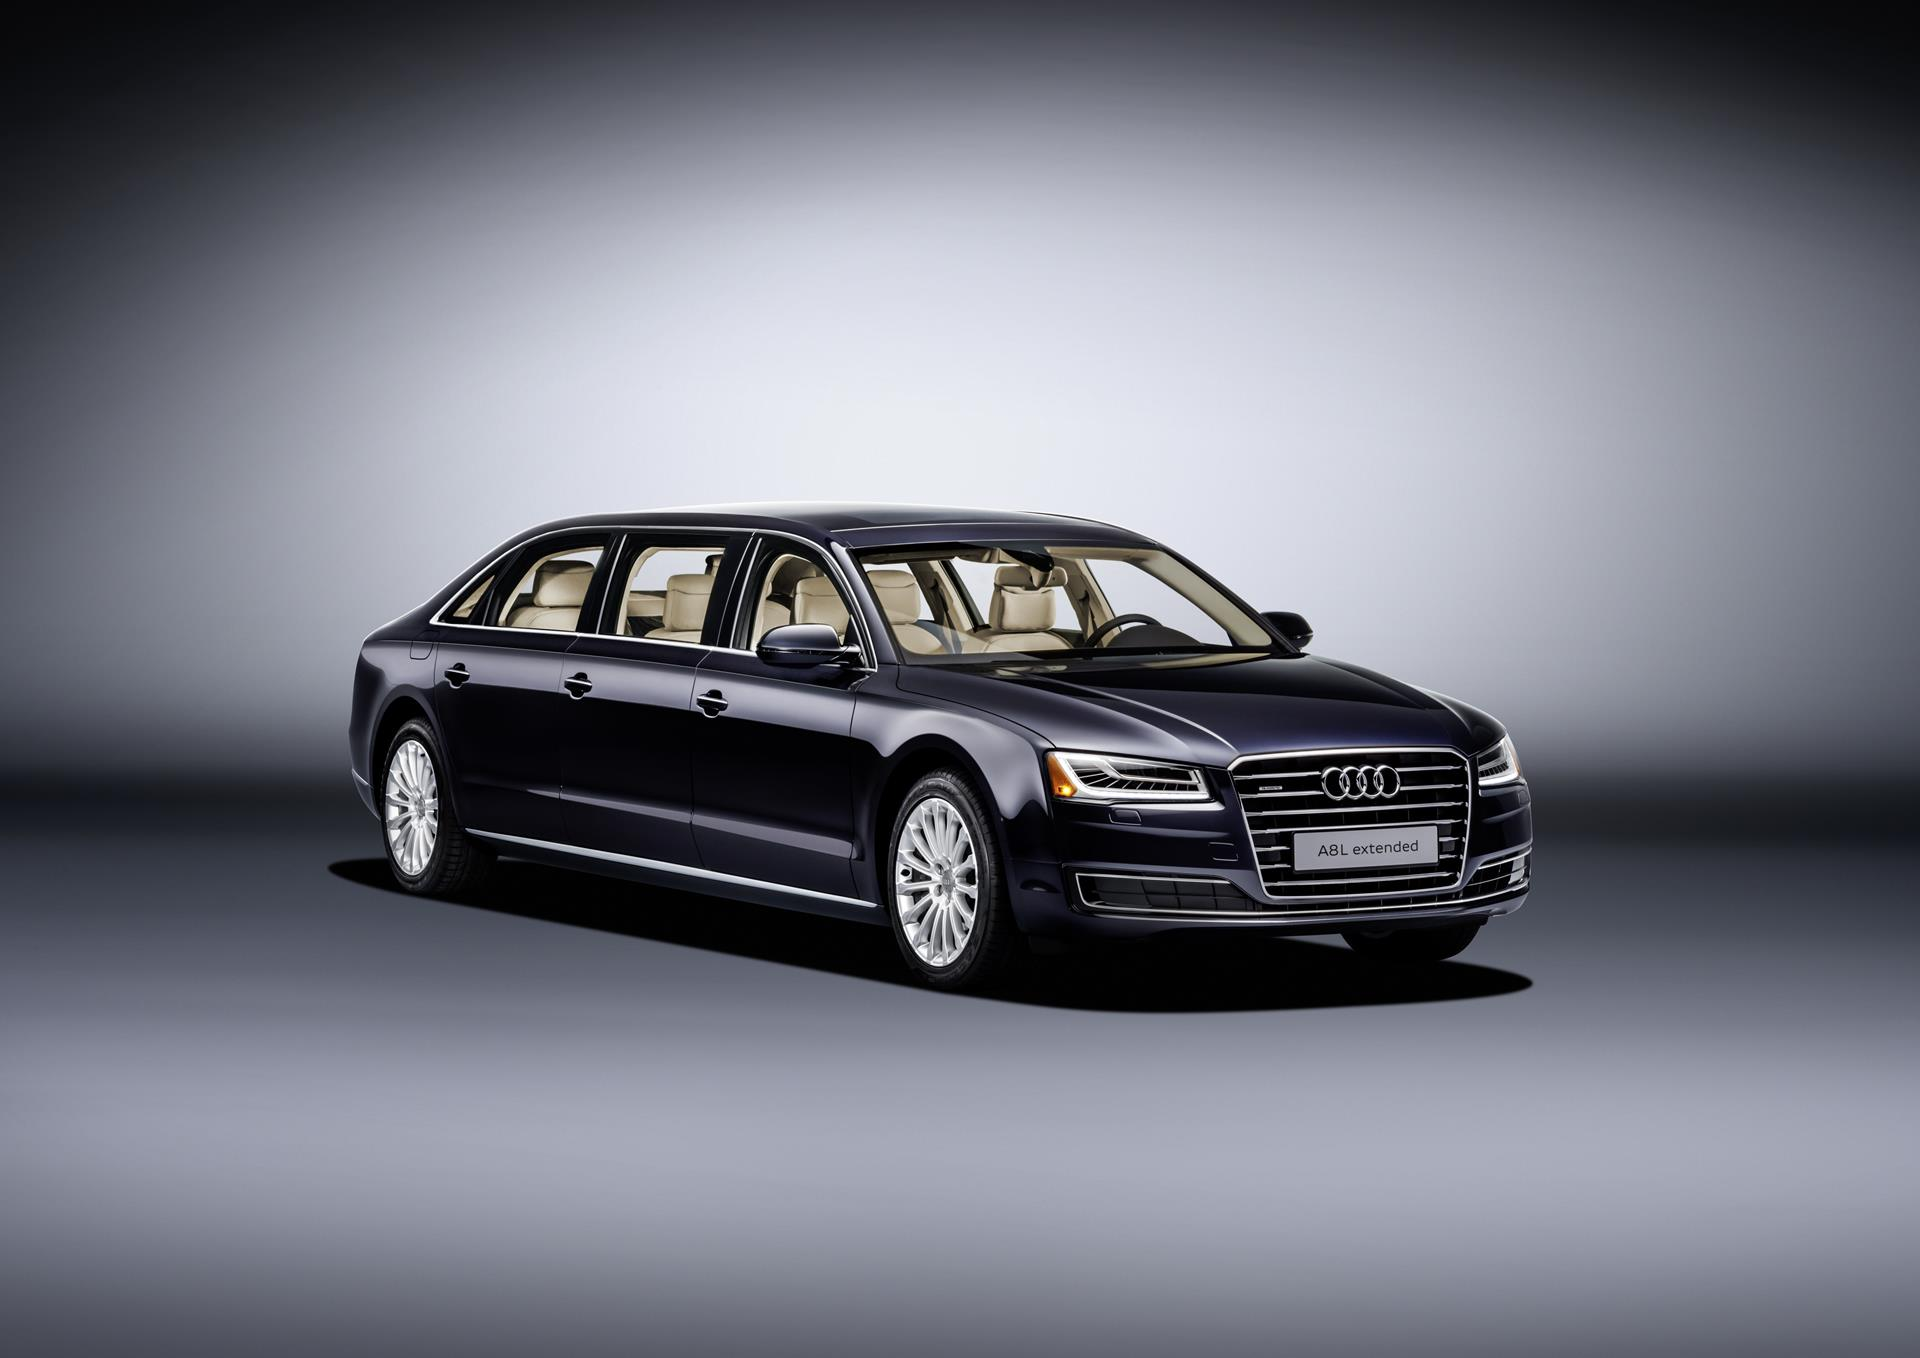 Audi A8 L Extended pictures and wallpaper